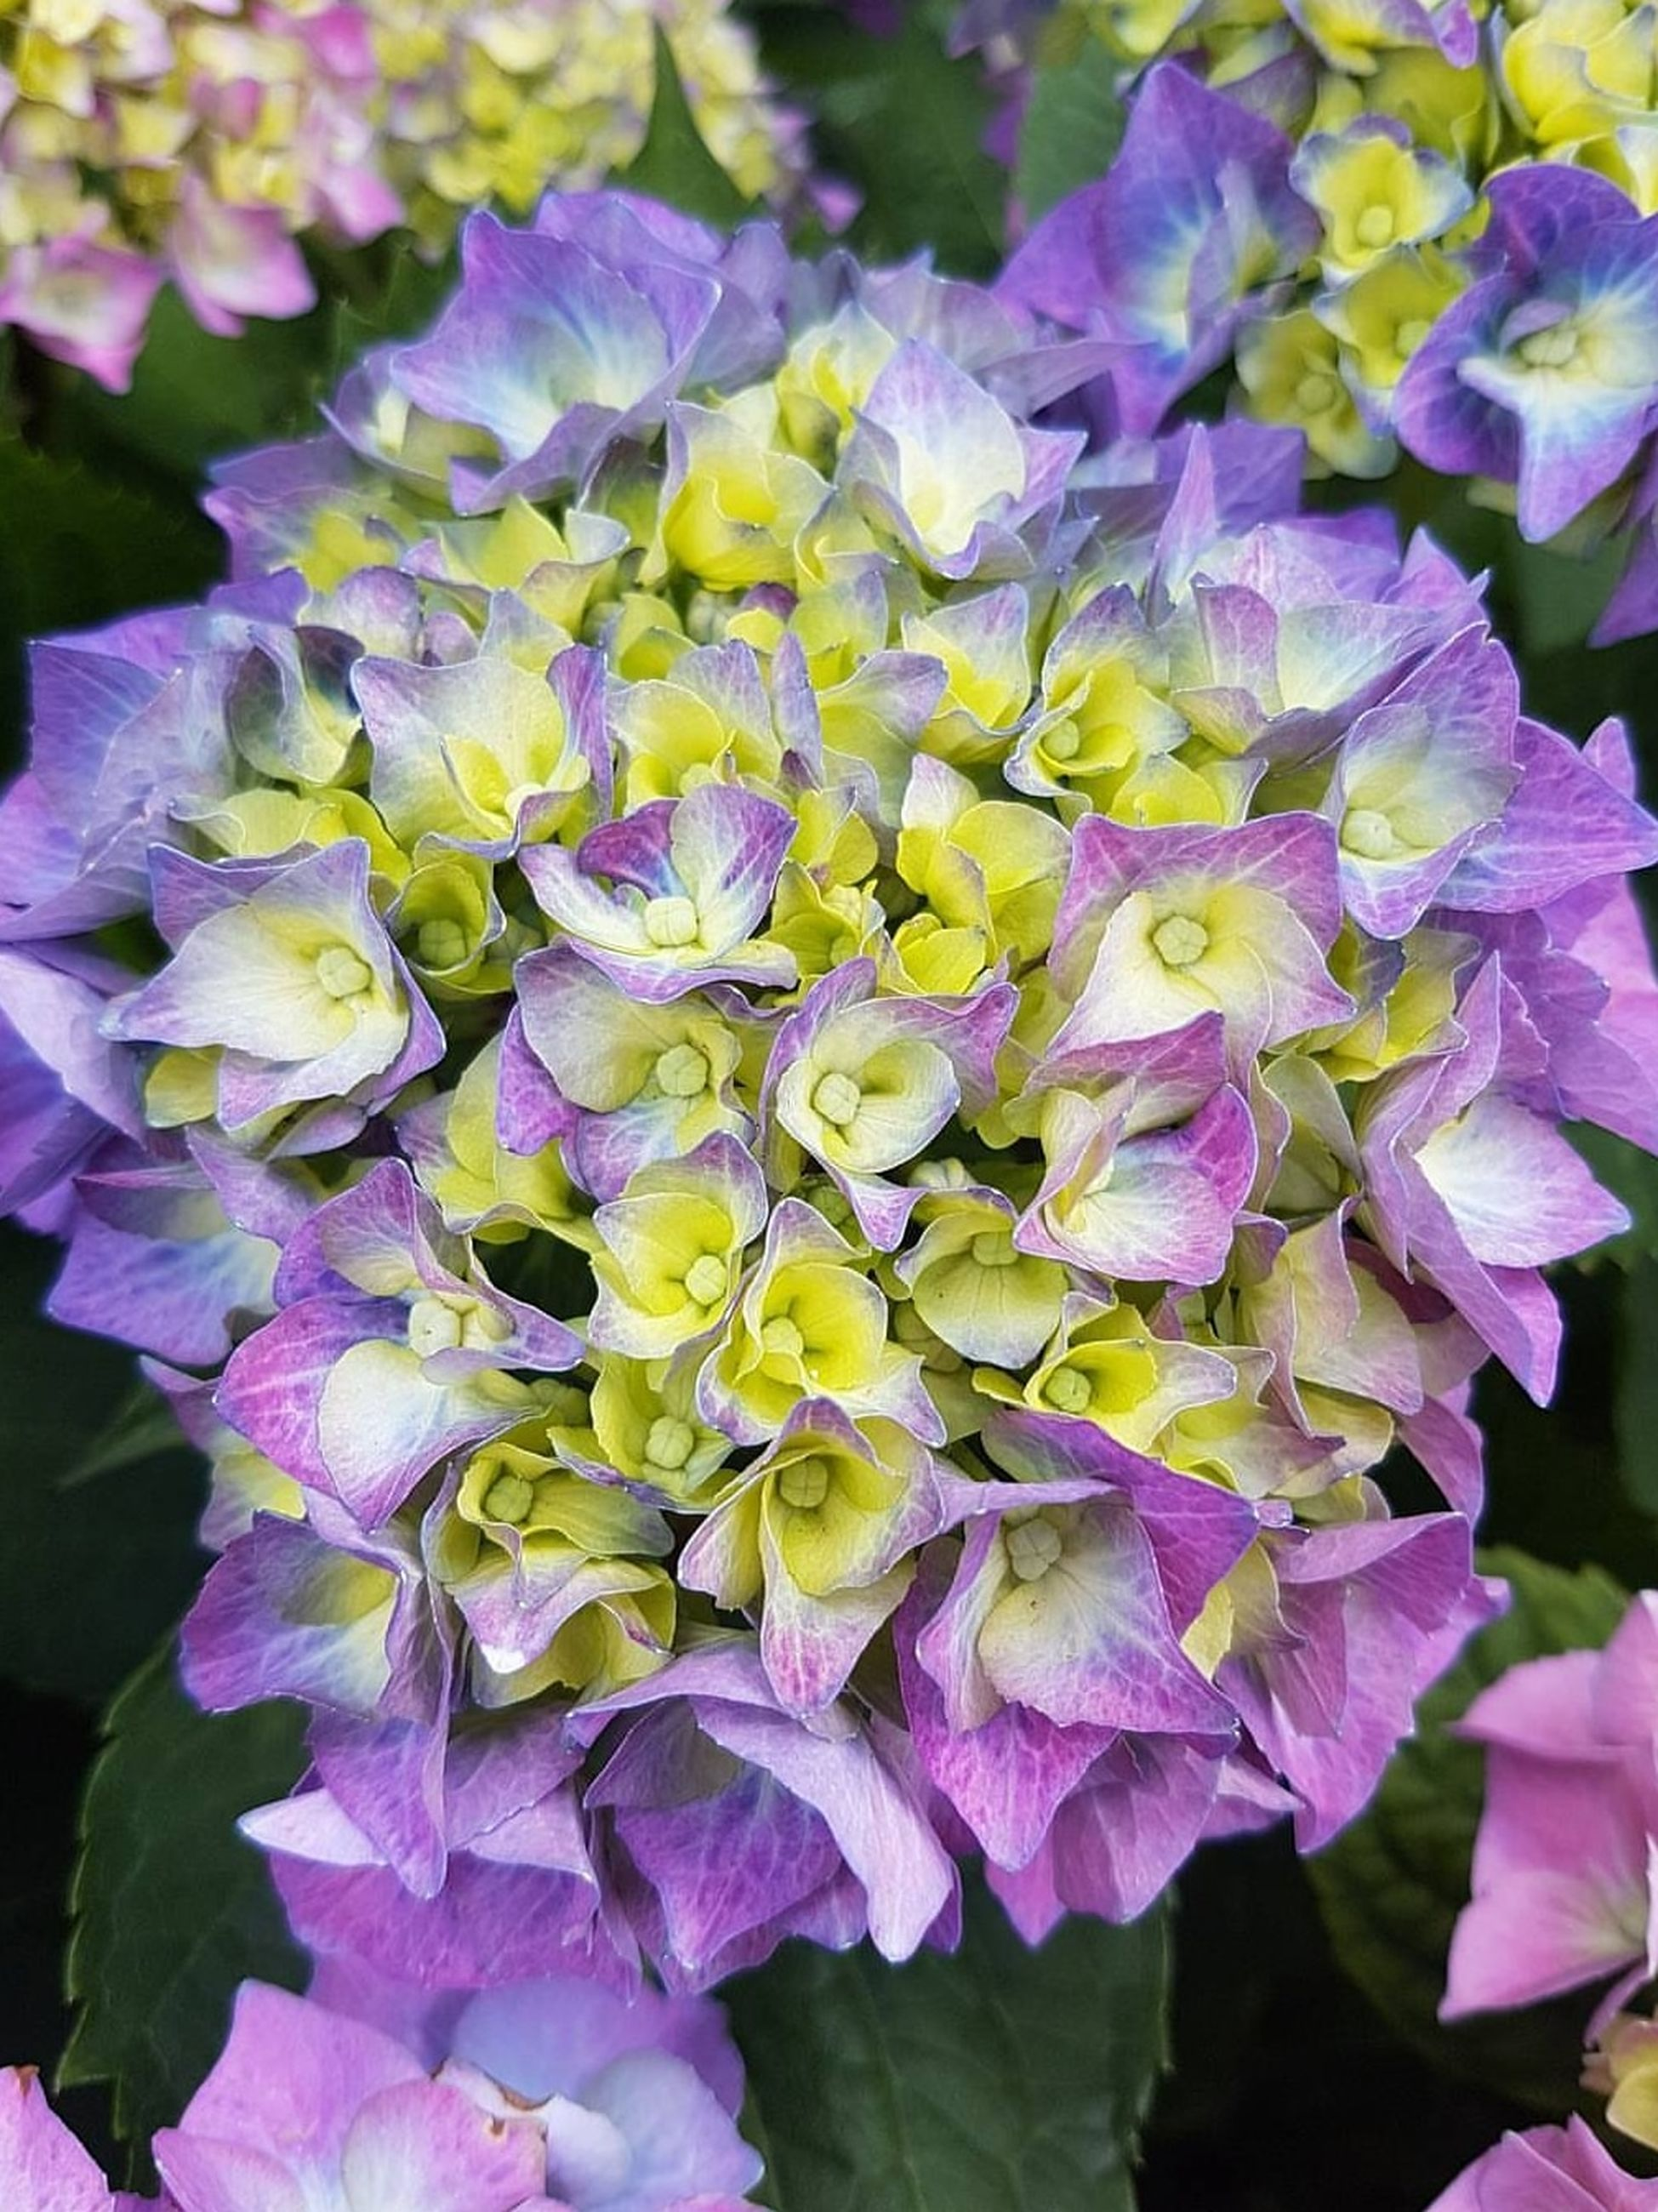 flowering plant, flower, plant, beauty in nature, fragility, vulnerability, freshness, growth, petal, inflorescence, close-up, flower head, purple, nature, day, focus on foreground, outdoors, no people, hydrangea, botany, bunch of flowers, lilac